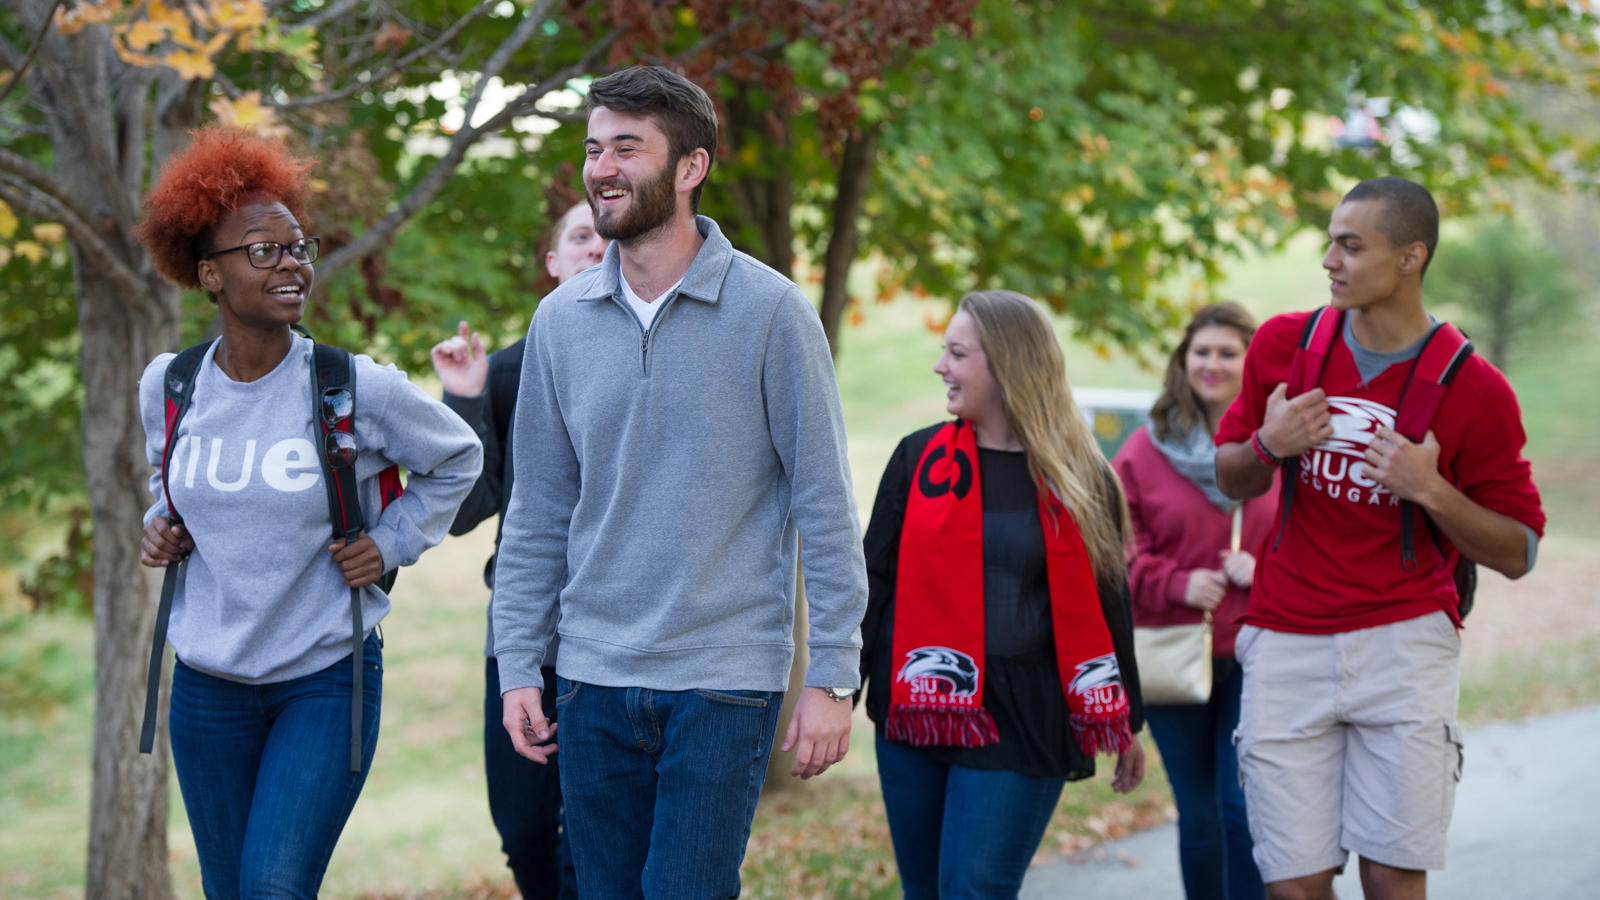 SIUE students walking on campus.